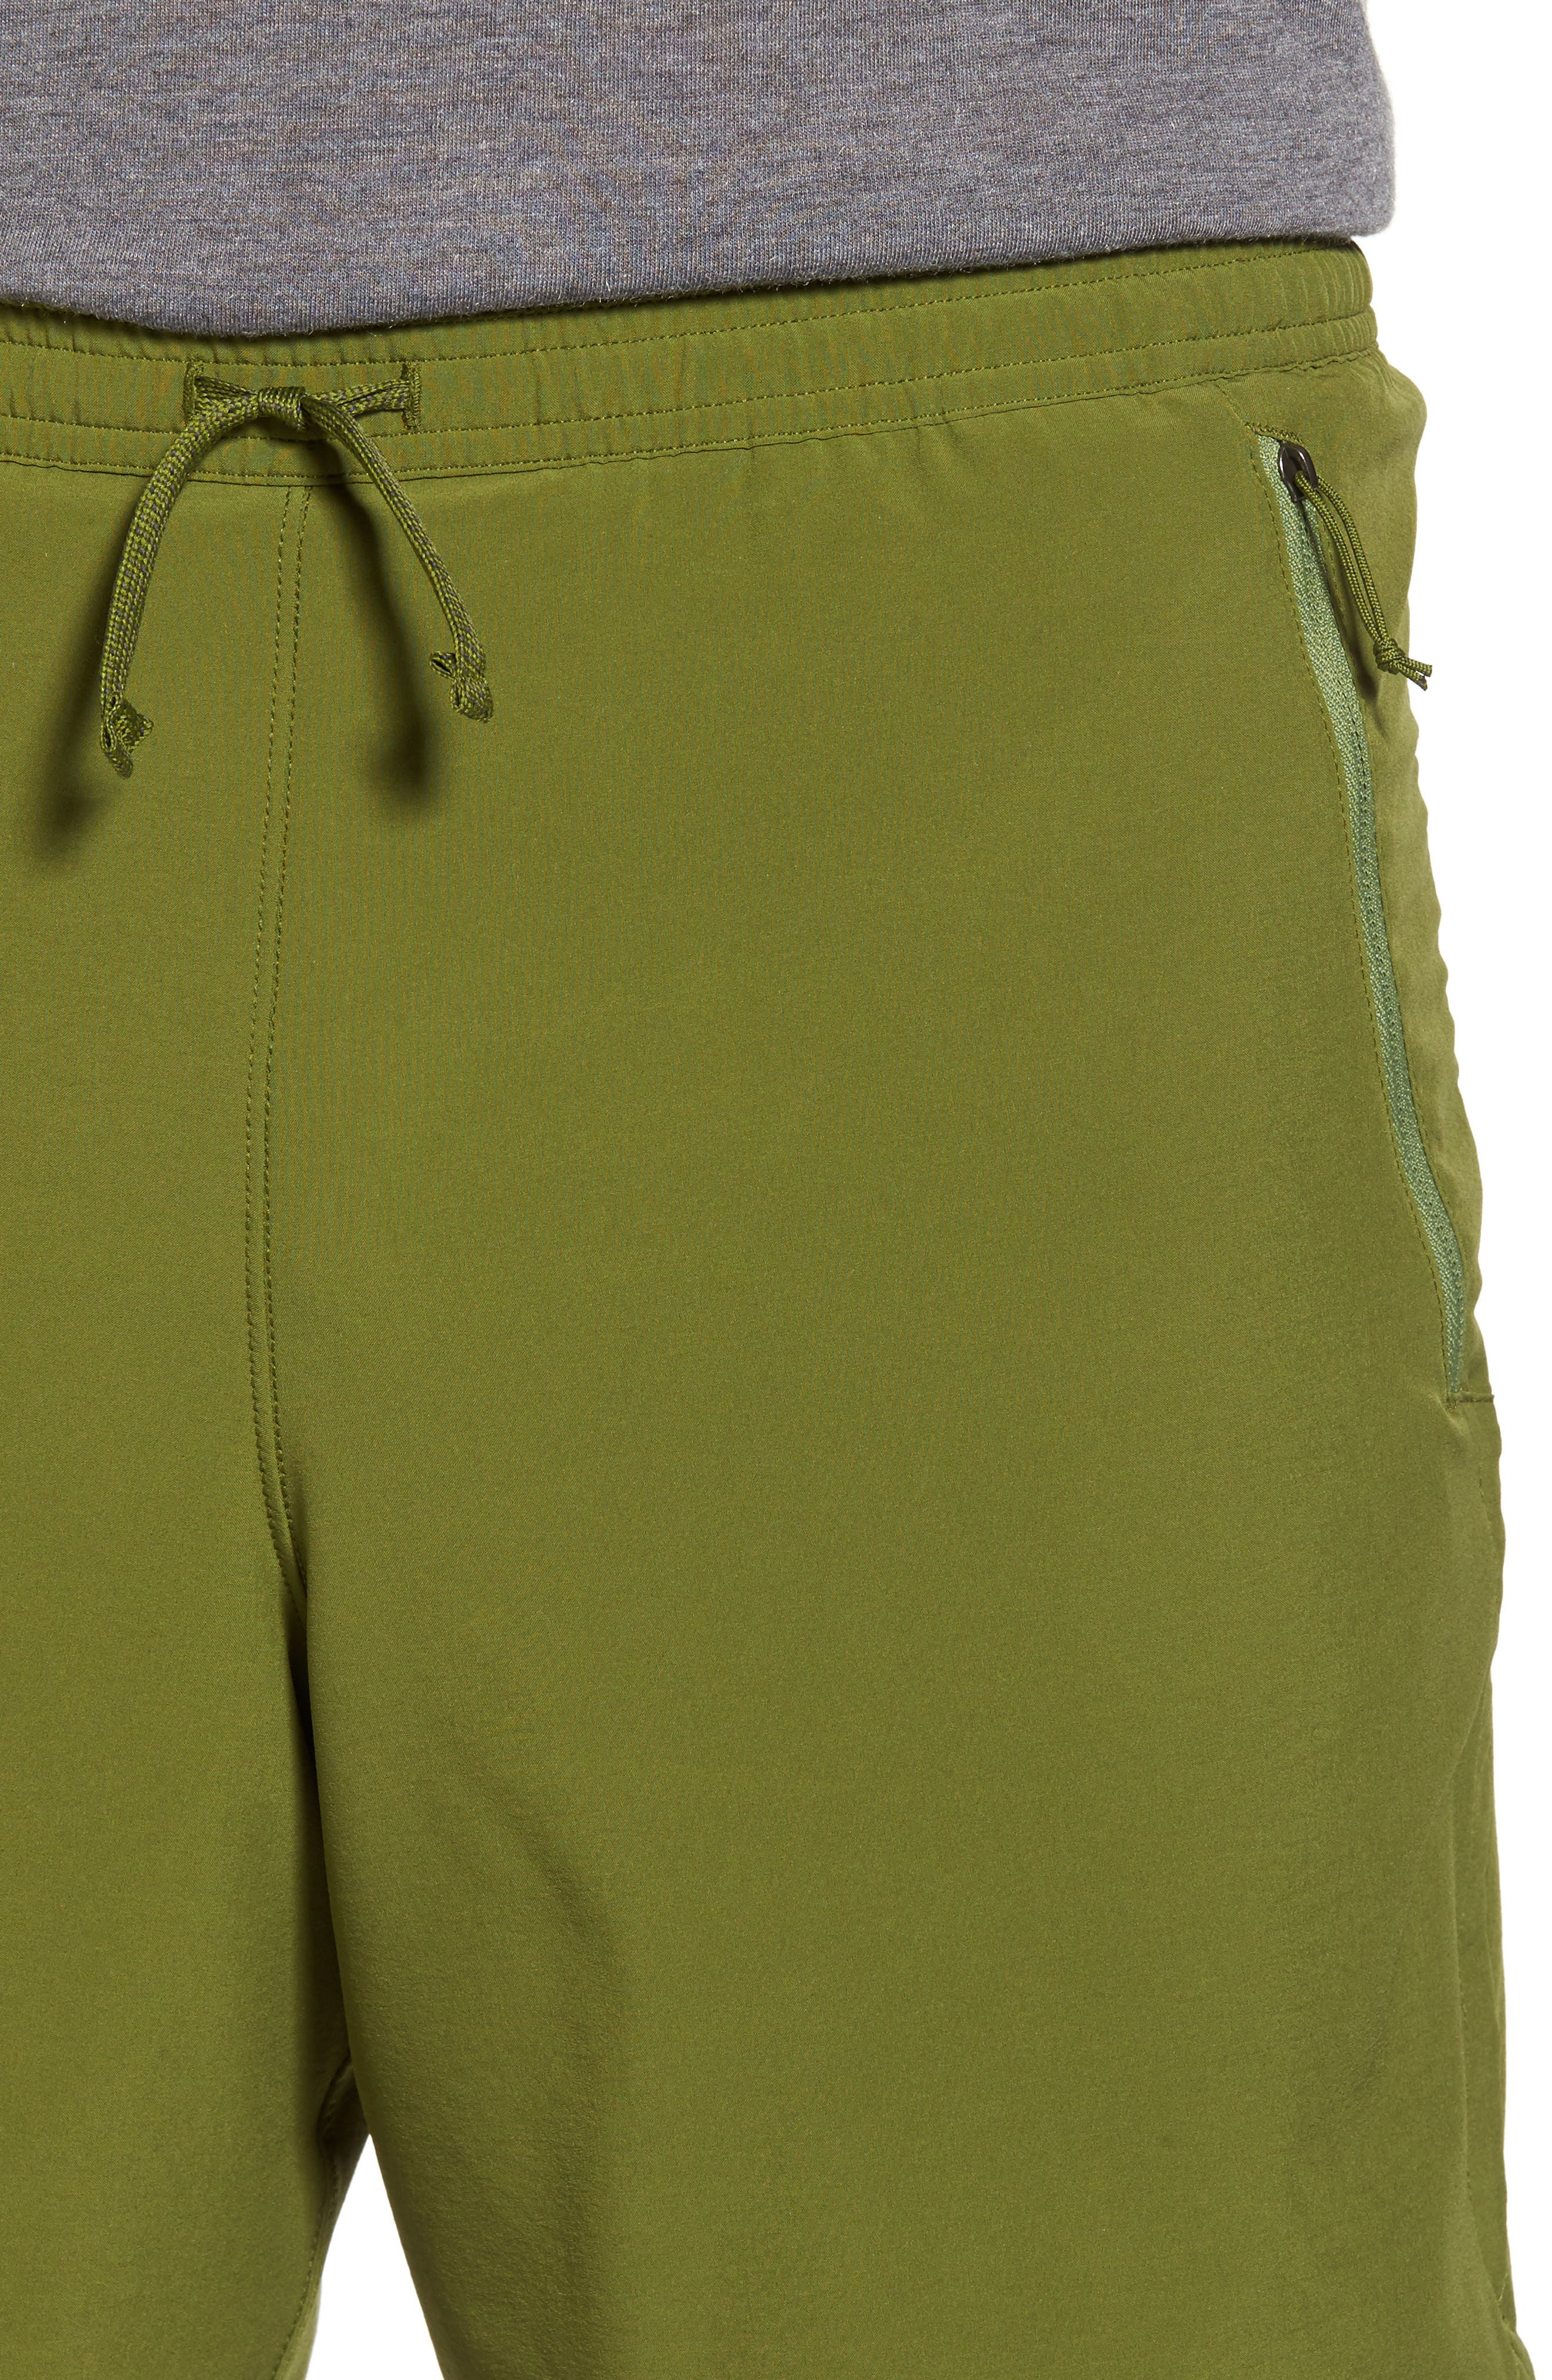 Nine Trails Hiking Shorts,                             Alternate thumbnail 15, color,